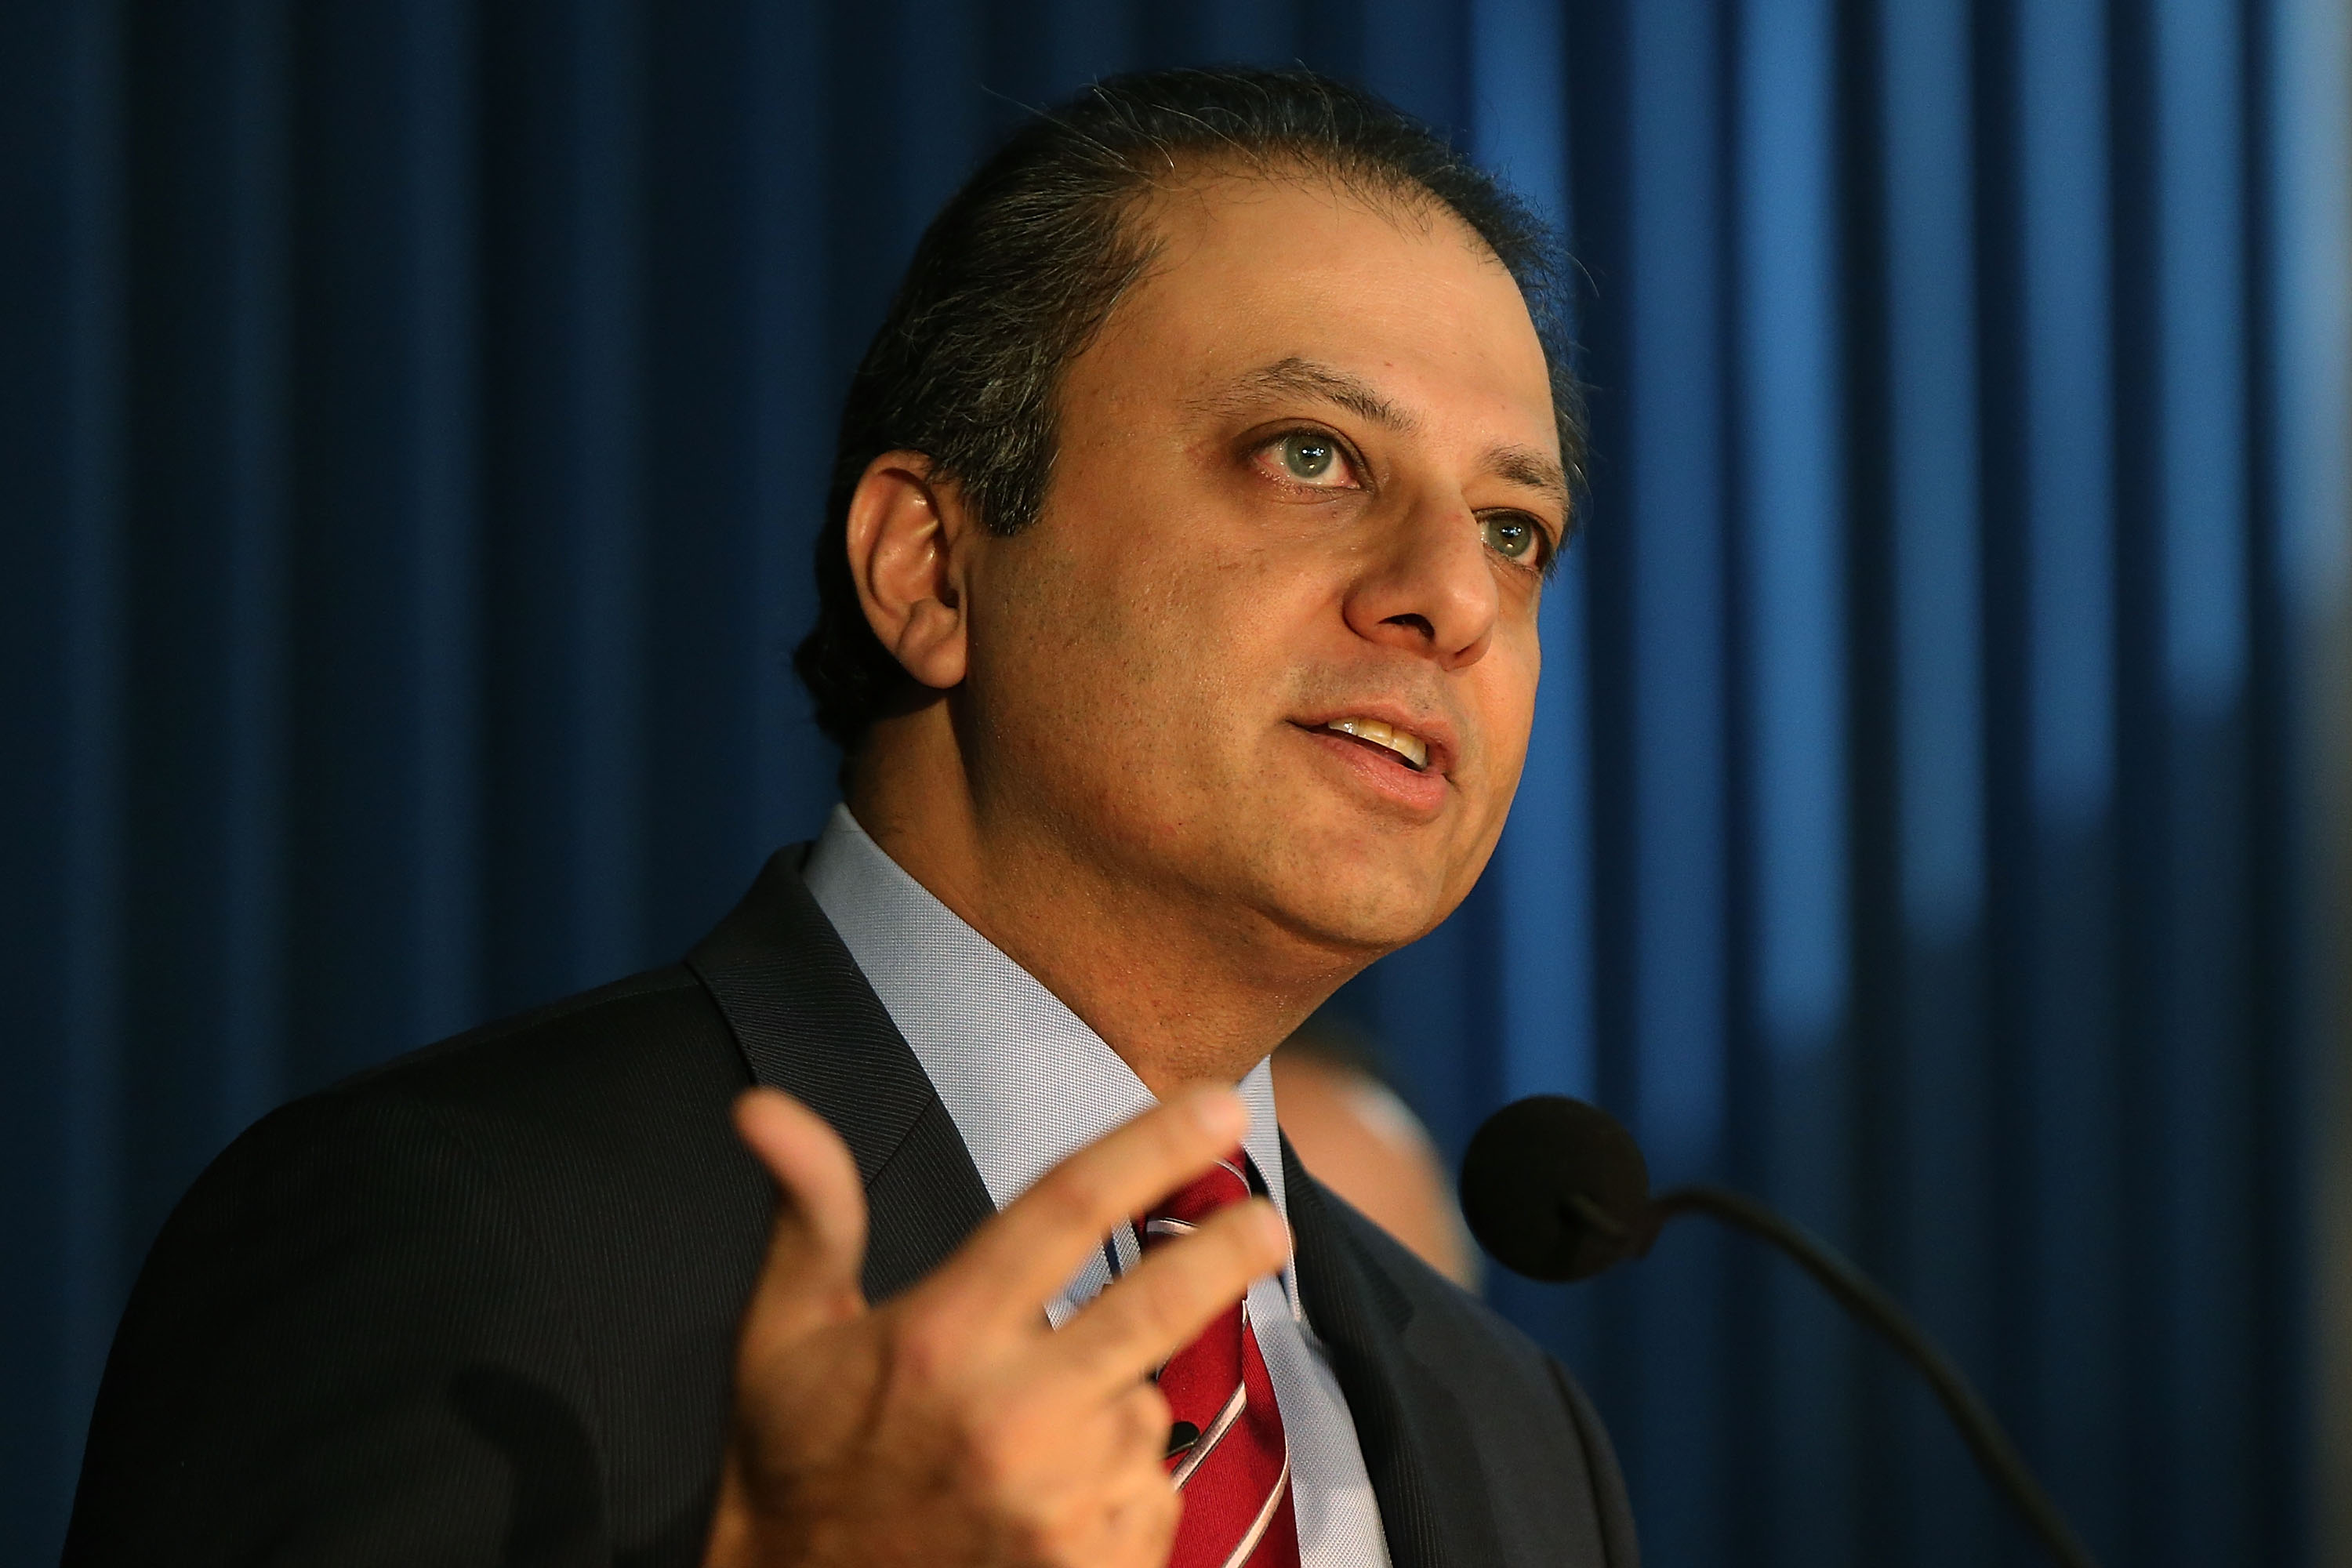 U.S. Attorney Preet Bharara. (Photo: Spencer Platt/Getty Images)